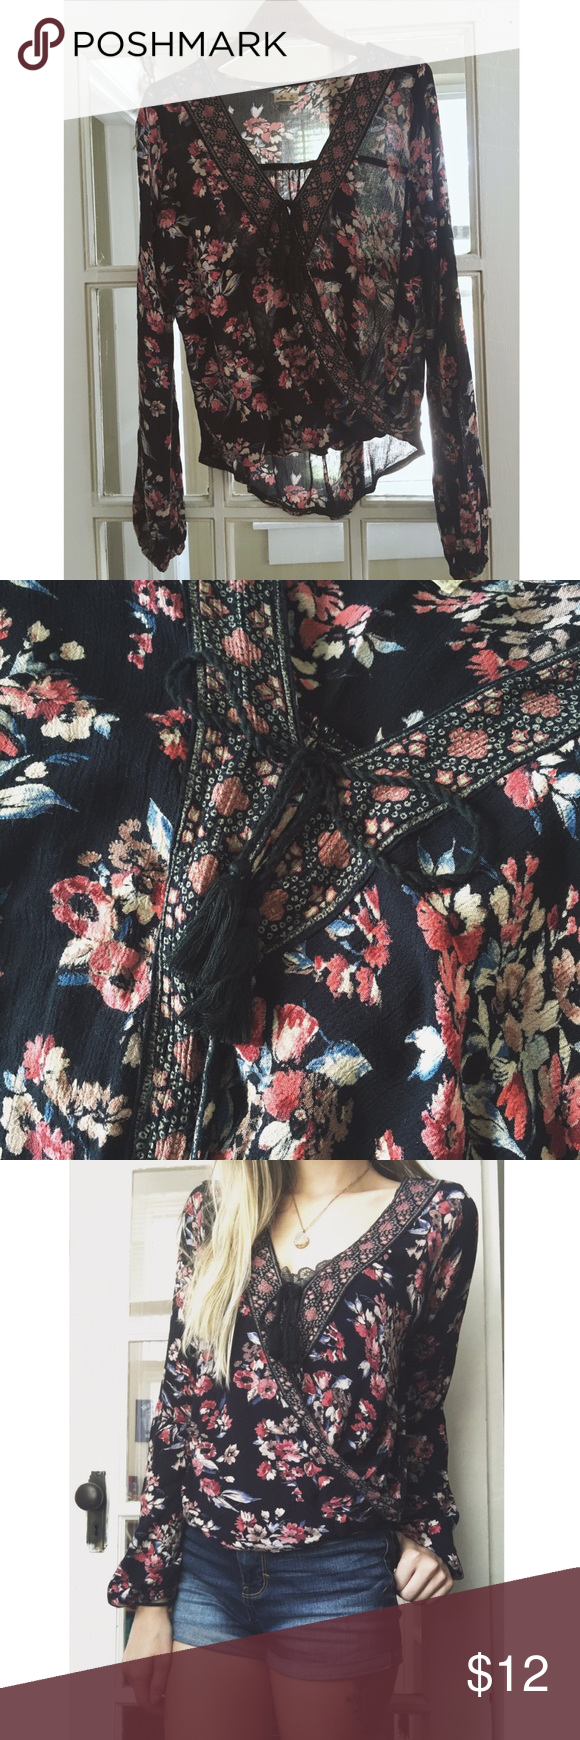 """♡Floral blouse!♡ Super cute, lightweight blouse that ties up in the front. It wraps in the center as well and covers any skin if tied up completely! Black with beautiful red and orange flowers! Model: 5'4"""", 100lbs, 34C ♡ Hollister Tops Blouses"""